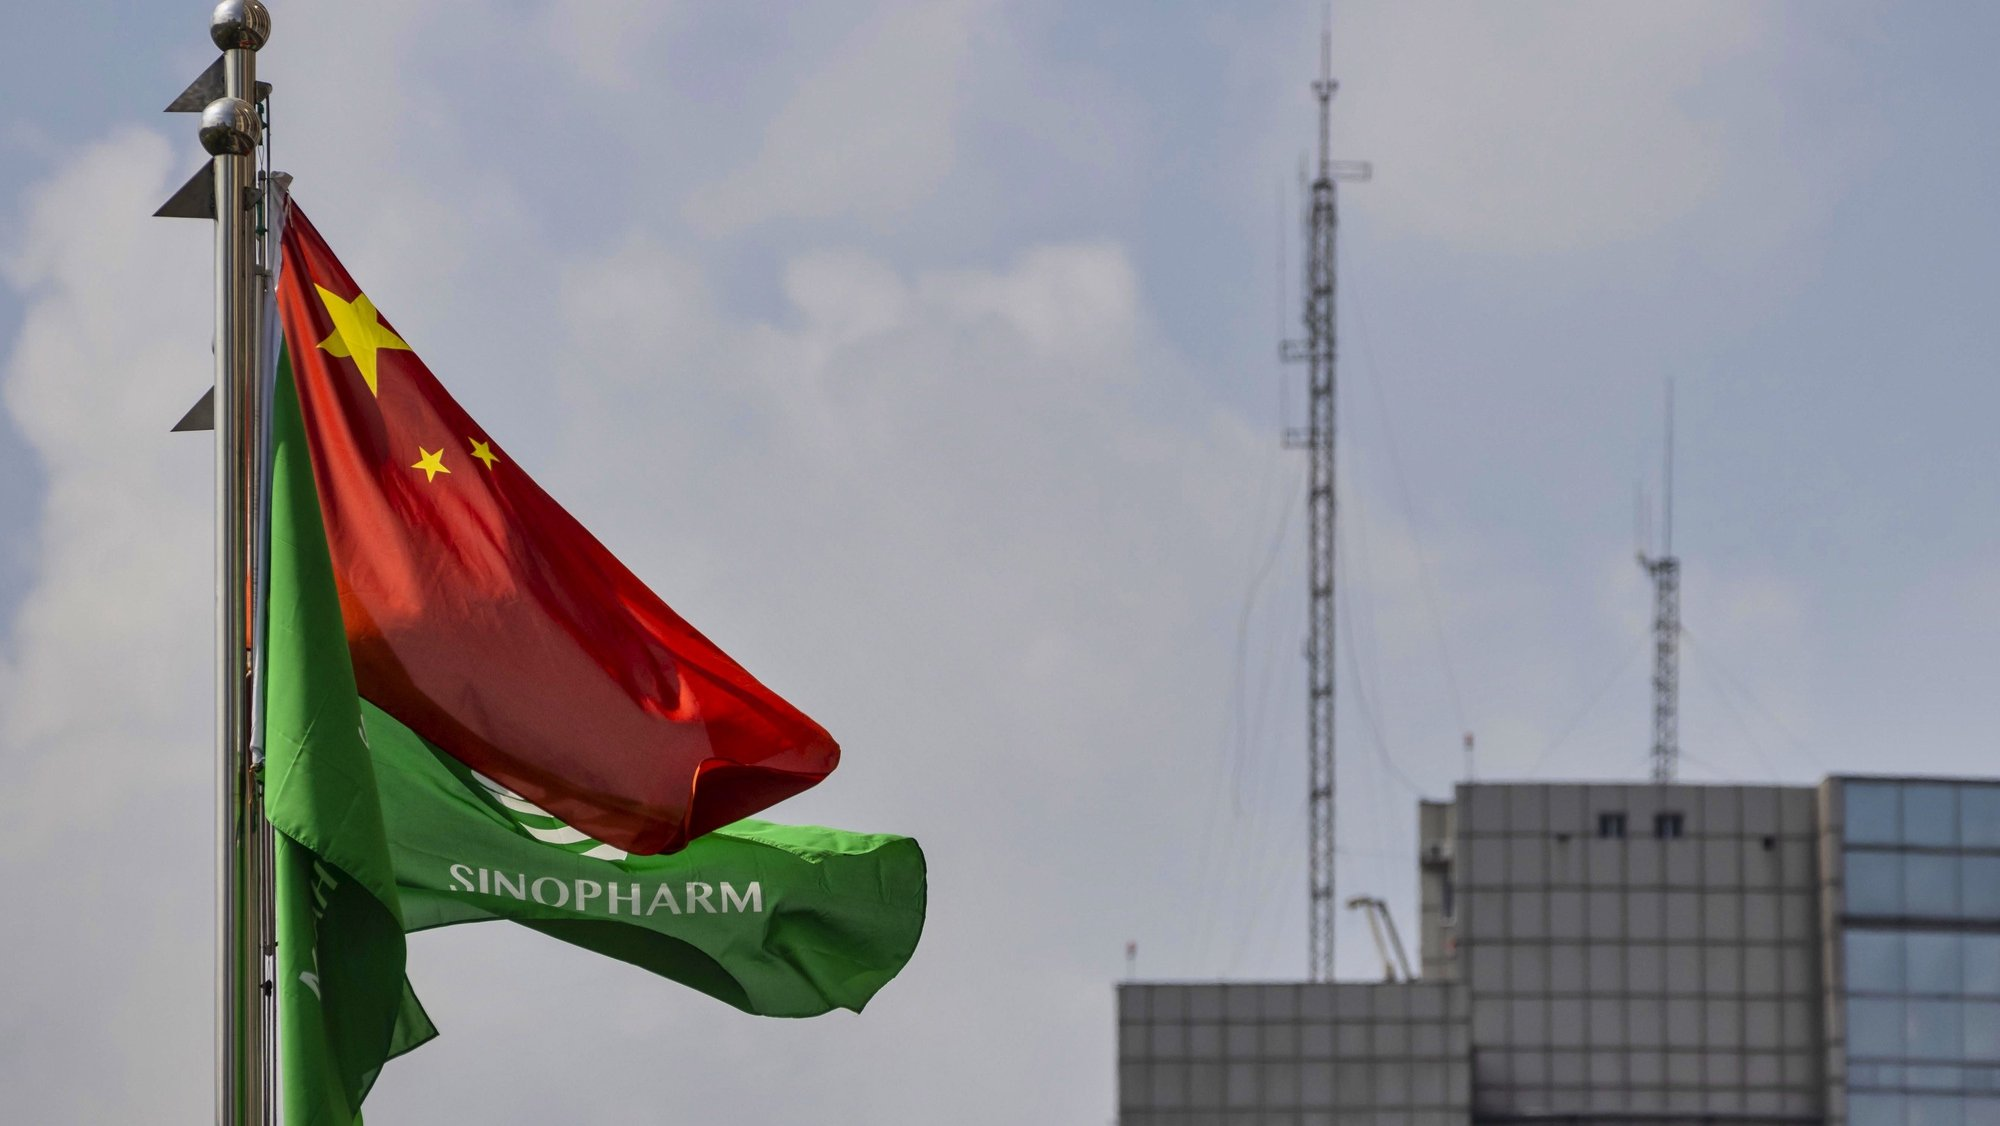 epa08628134 A flag with the Sinopharm company logo flies at the company's headquarters in Shanghai, China, 25 August 2020 (issued 27 August 2020). According to media reports, Sinopharm, major state-owned Chinese pharmaceutical company, plans to have a COVID-19 vaccine on the market by the end of 2020.  EPA/ALEX PLAVEVSKI